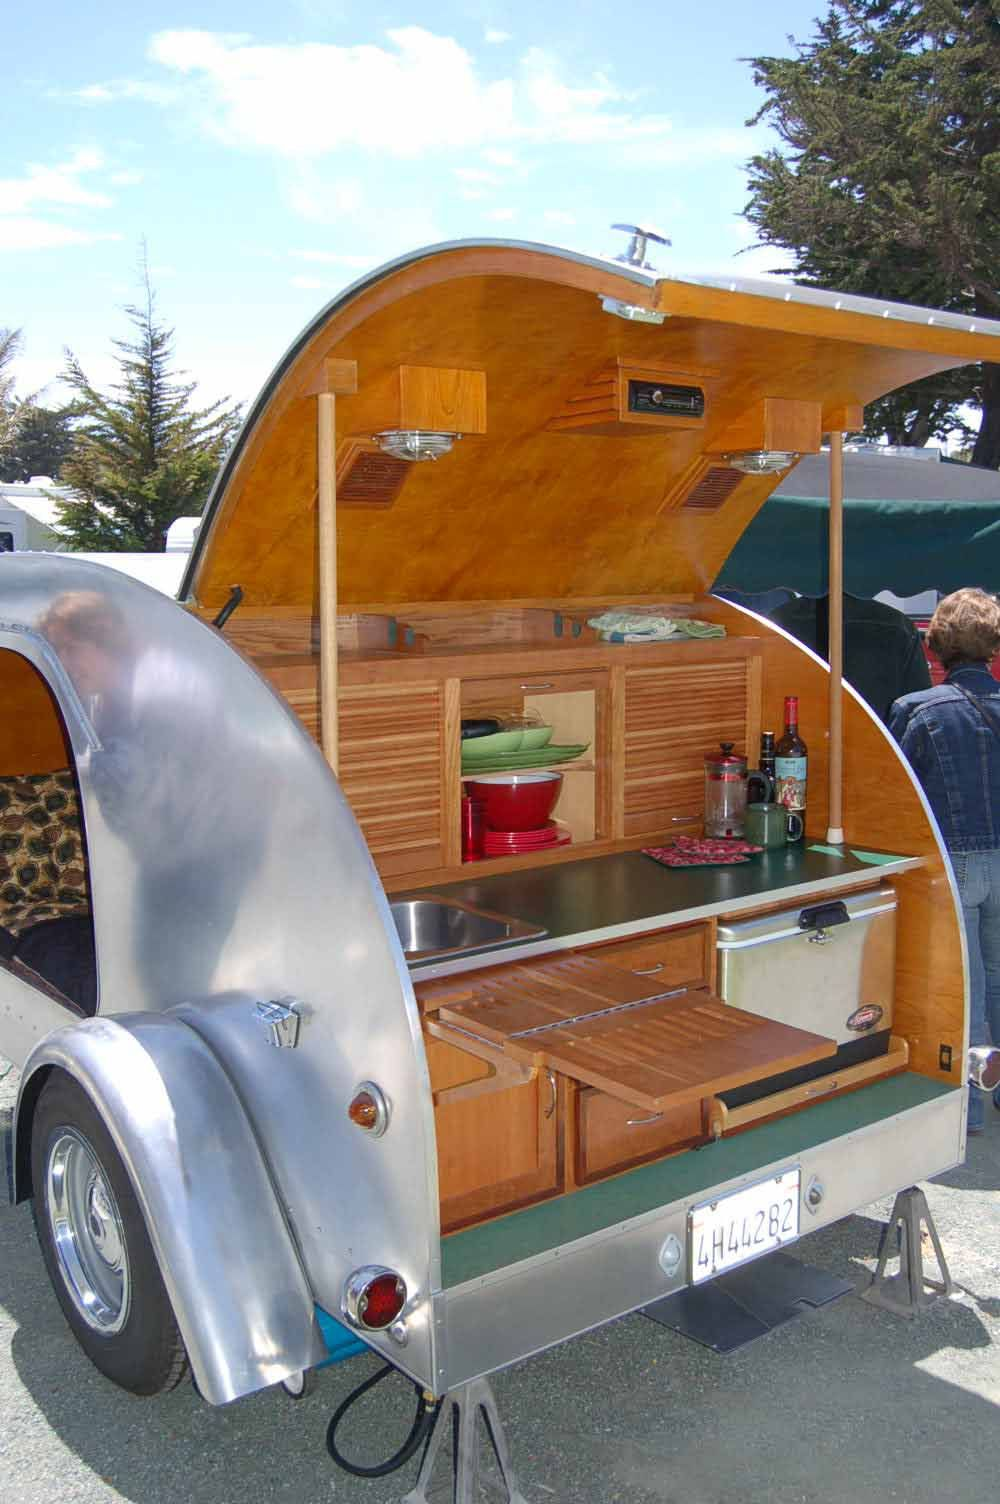 Mobile kitchen. Could pull right up with cocktails after a